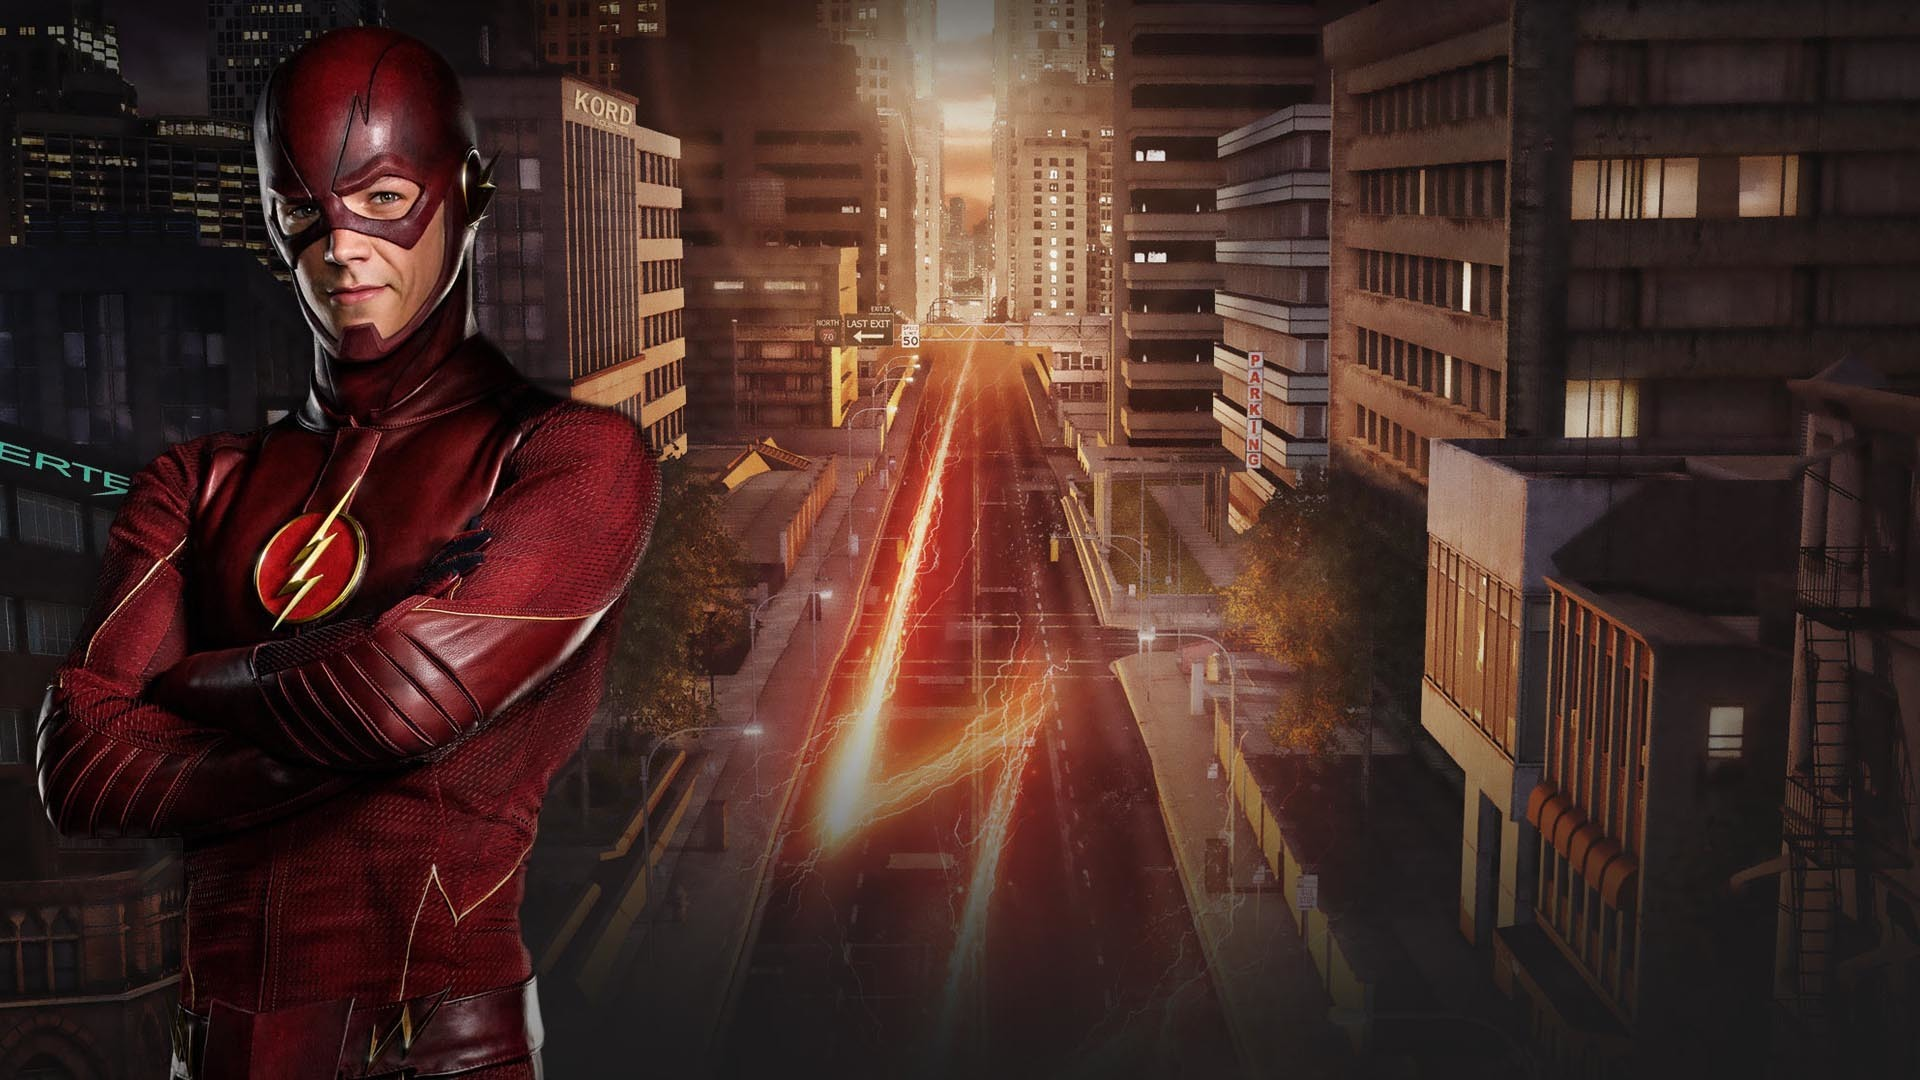 The Flash 2014 Wallpapers Desktop Backgrounds   5   Galaxy Note 1920x1080